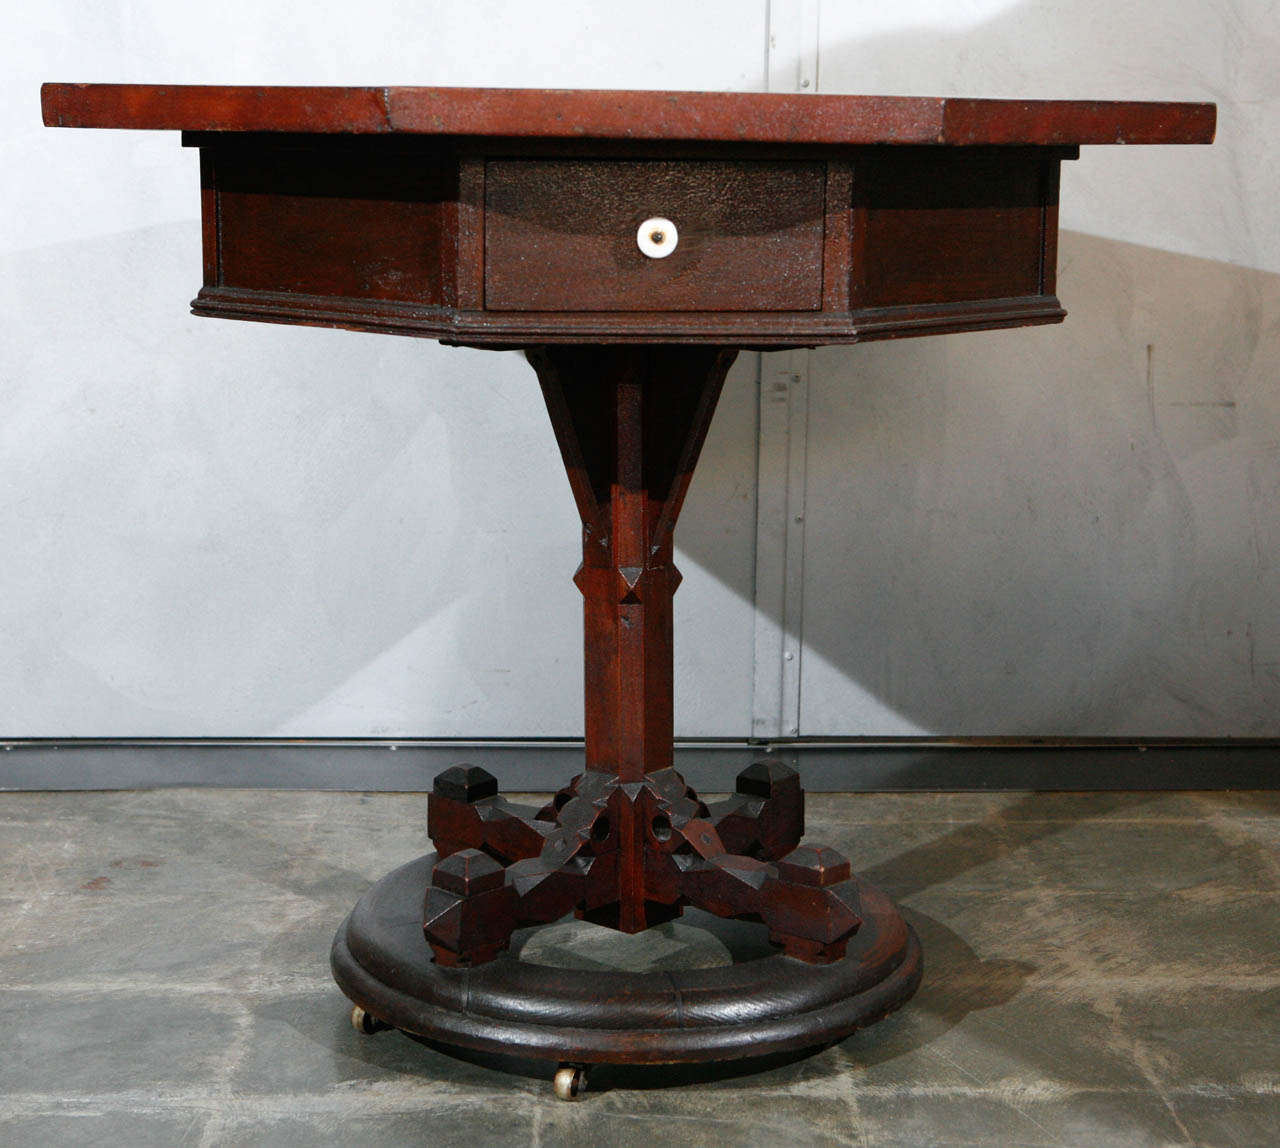 A most unusual and interesting American, 19th century, table having an octagonal top, recessed skirt with two drawers, on a central column which stands on a circular base with wheels. The top has a mysterious and intriguing panel veneered in exotic